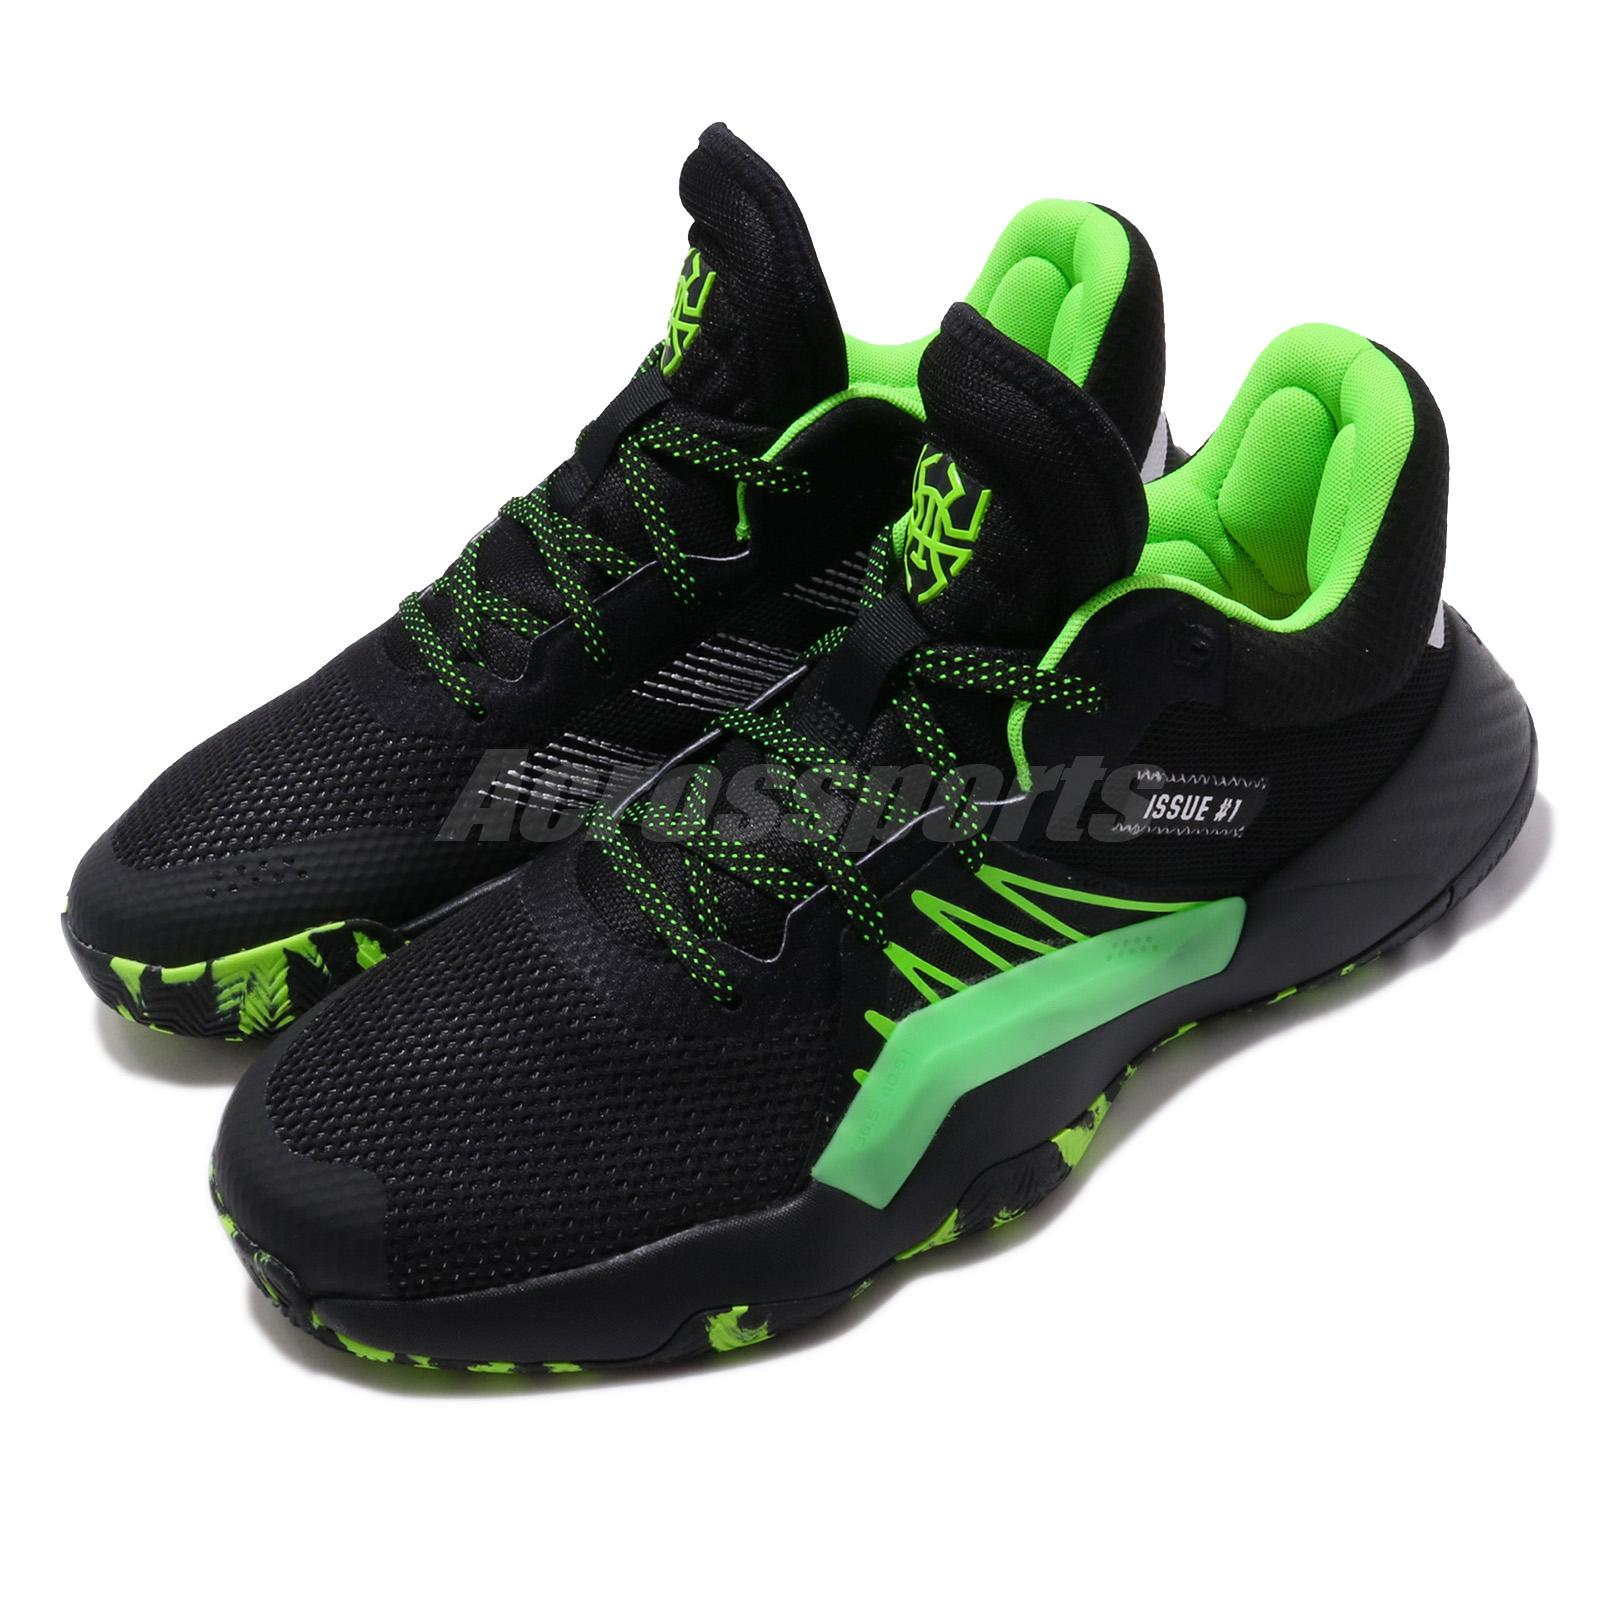 Details about adidas D.O.N. Issue 1 Black Green Stealth Spider Man Marvel Mitchell EF8757